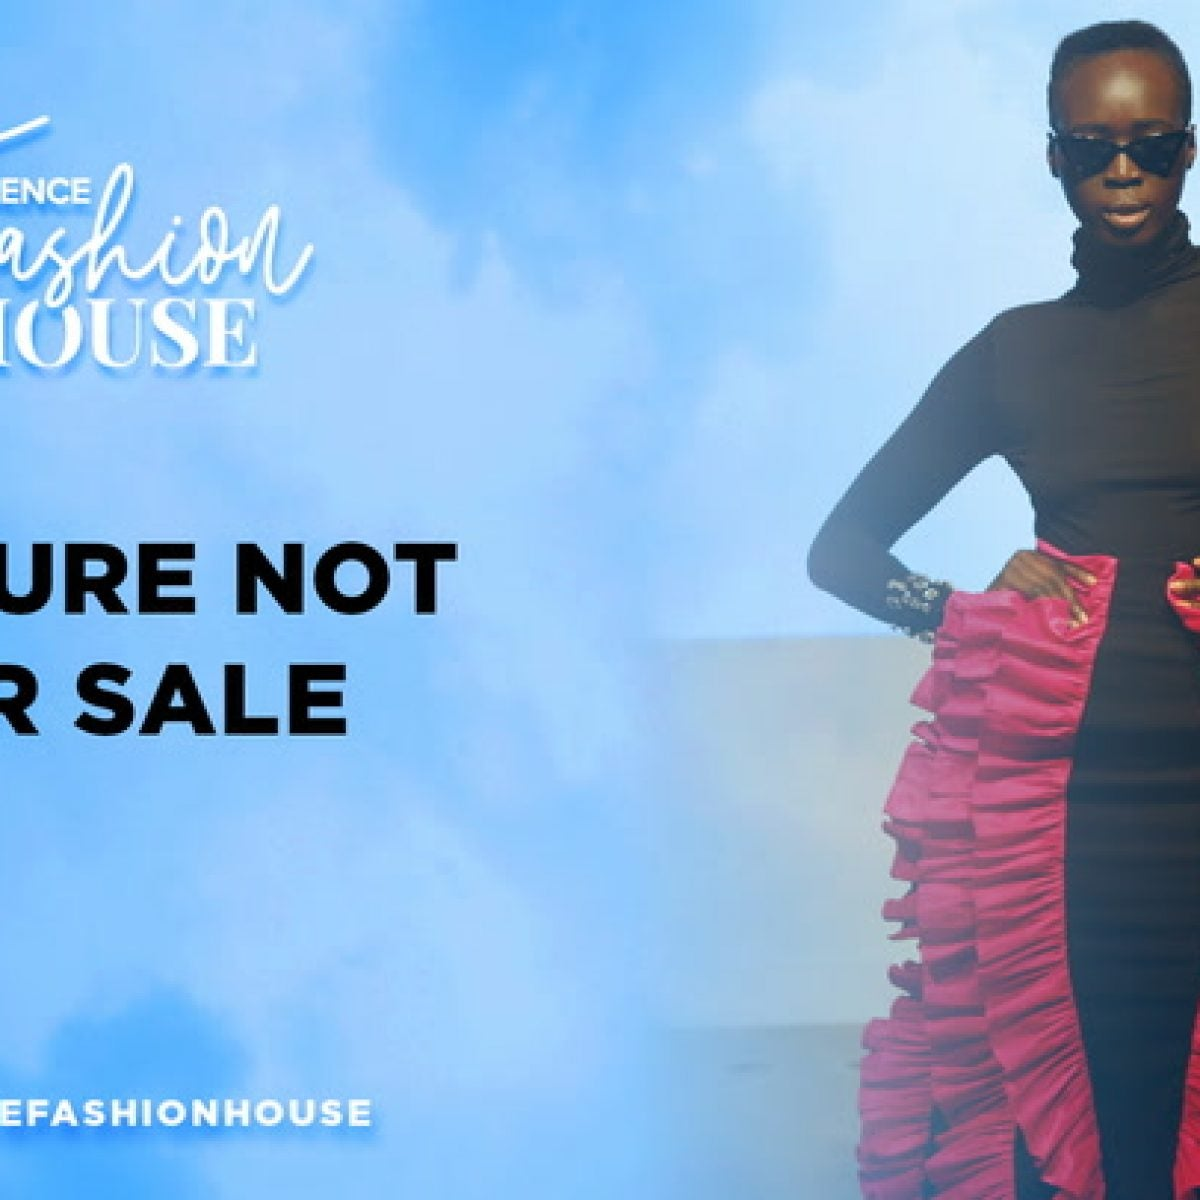 Fashion House | Culture Not For Sale